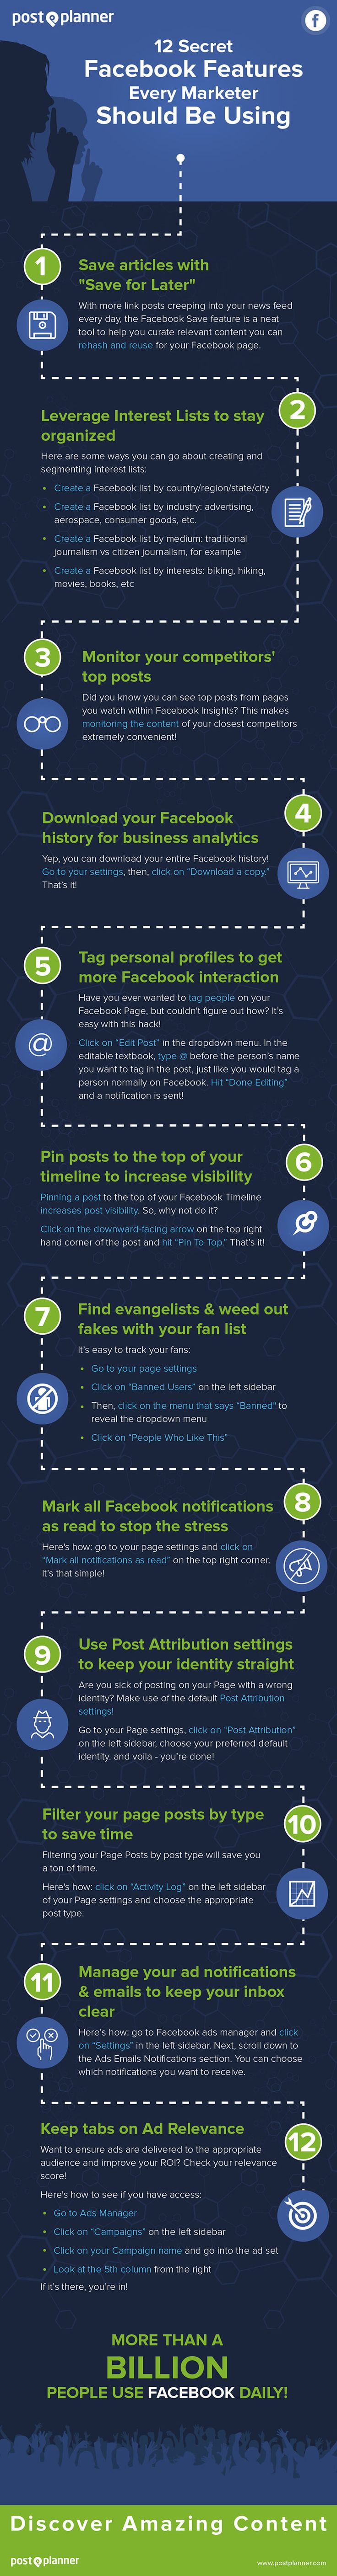 Post Planner's 12 Secret Facebook Features Every Marketer Should Be Using -